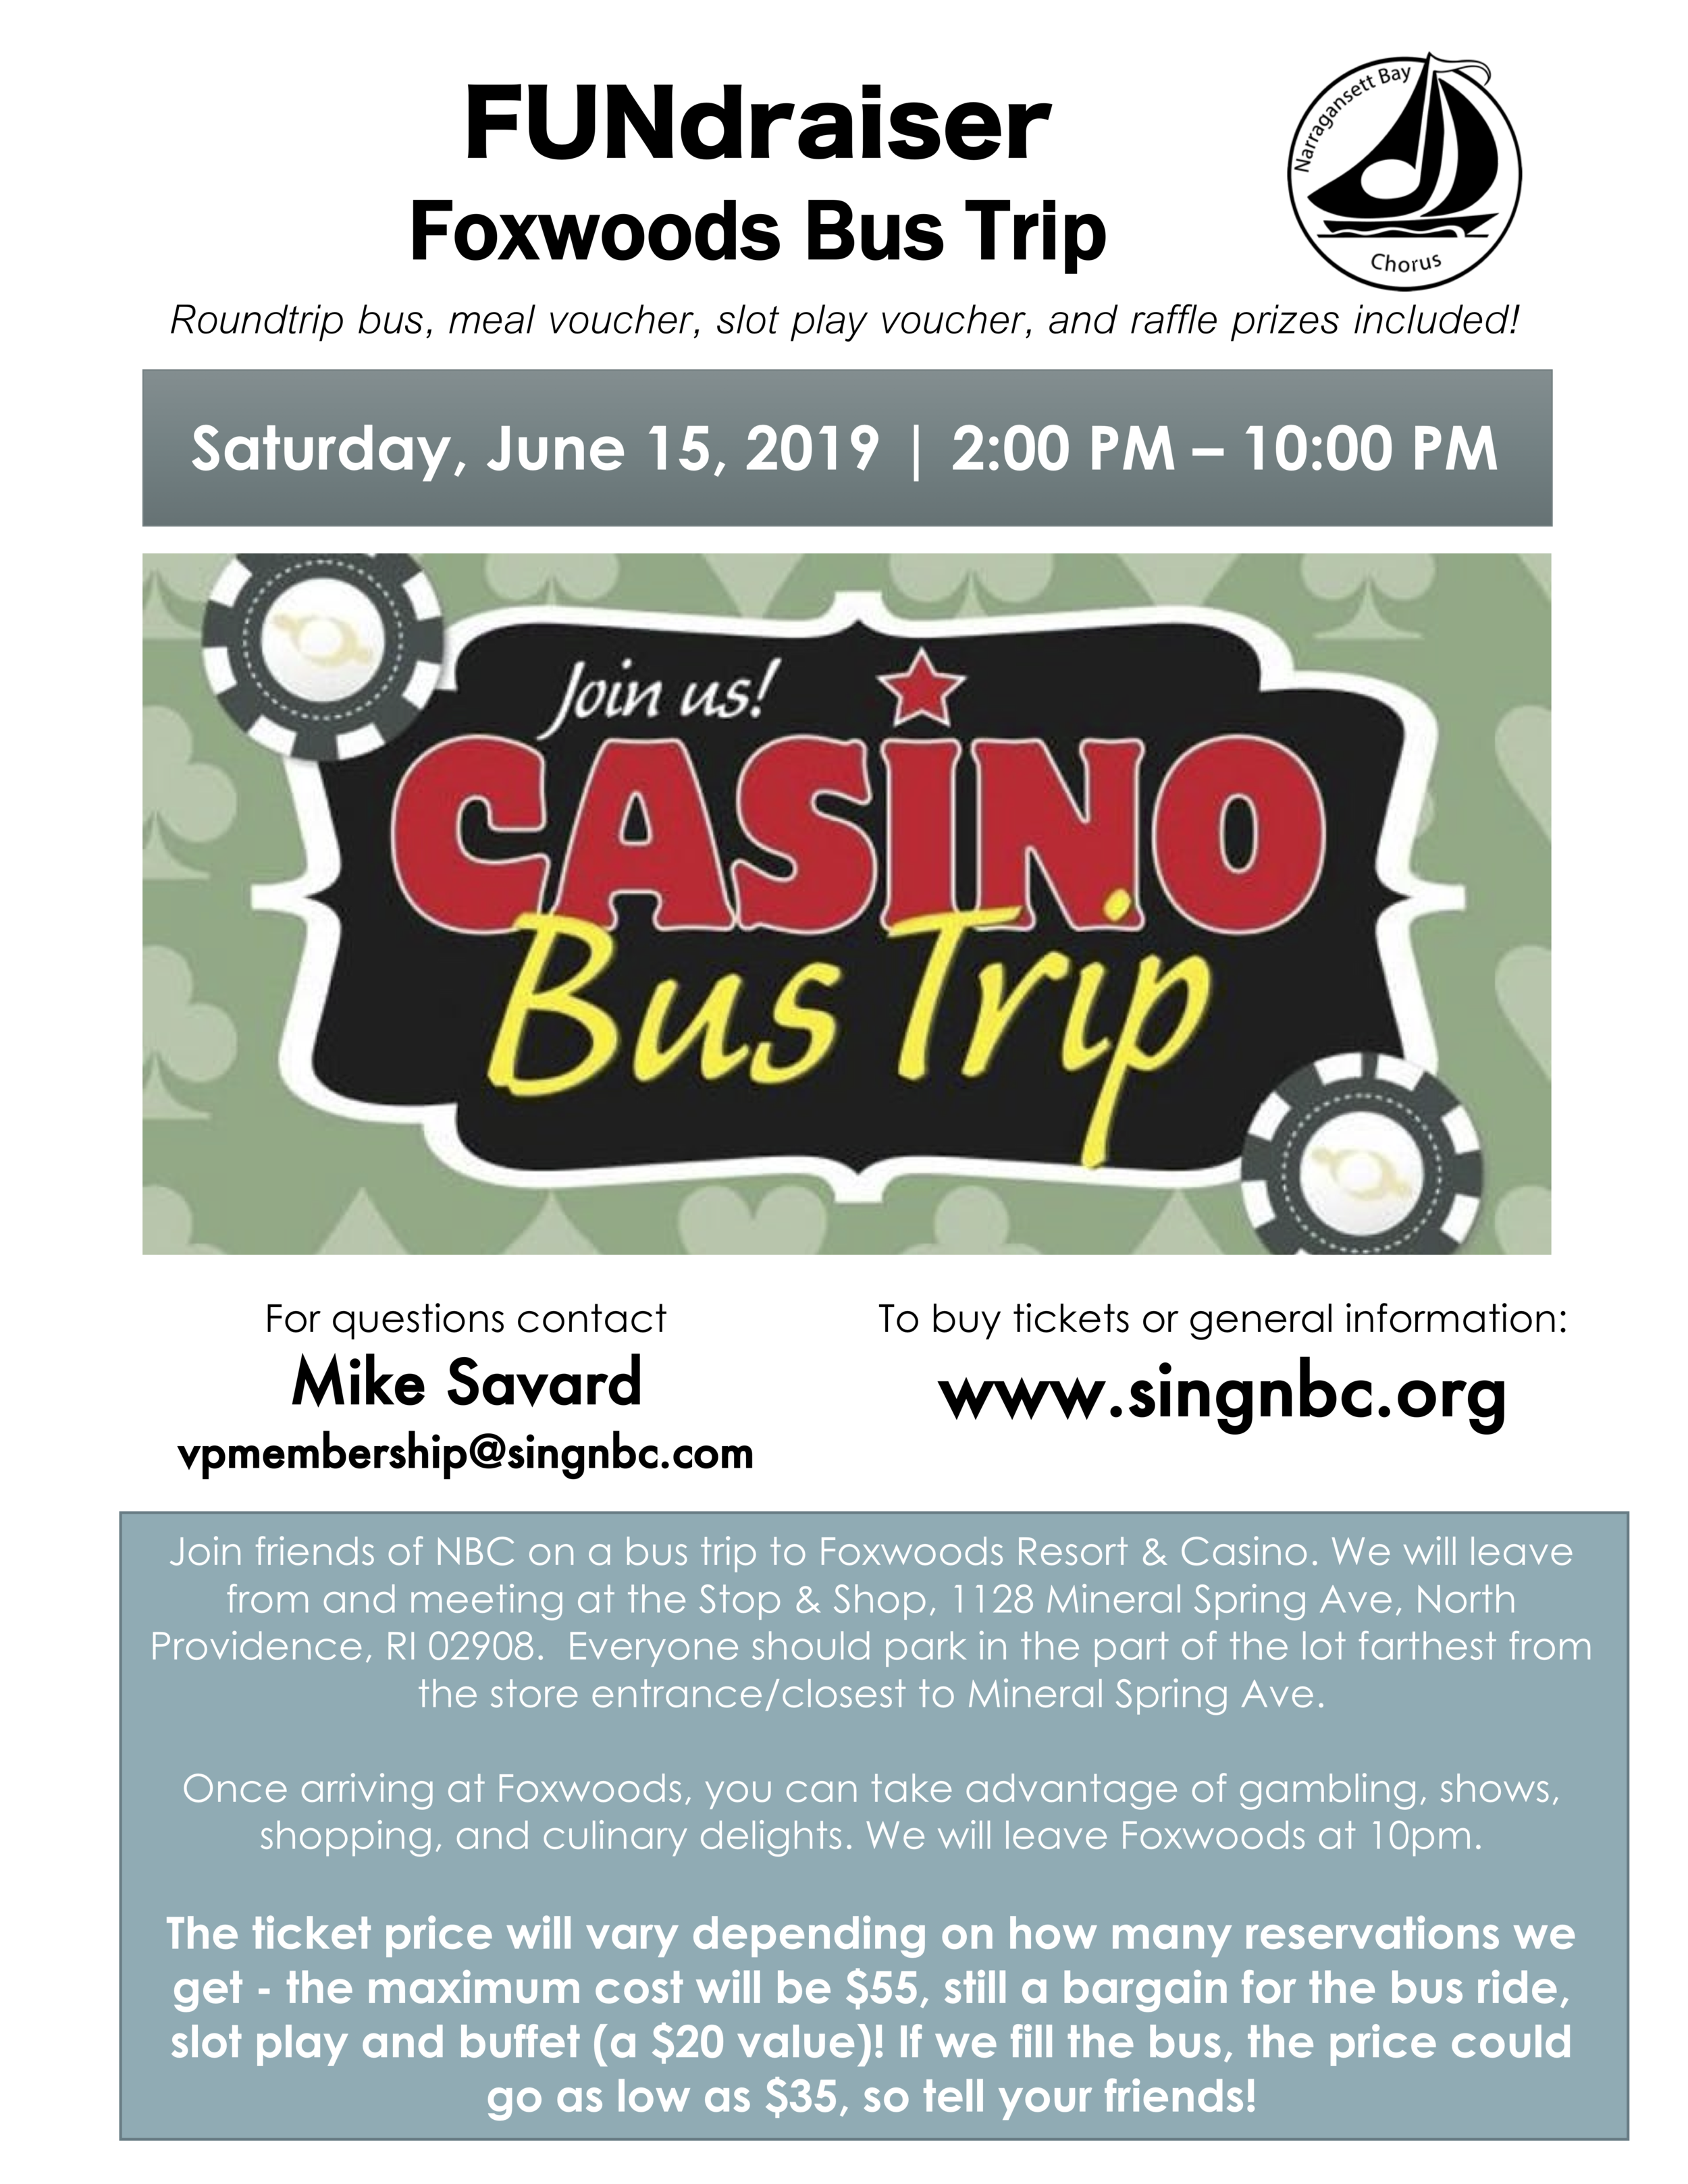 NBC FUNdraiser - Foxwoods 06.2019.png